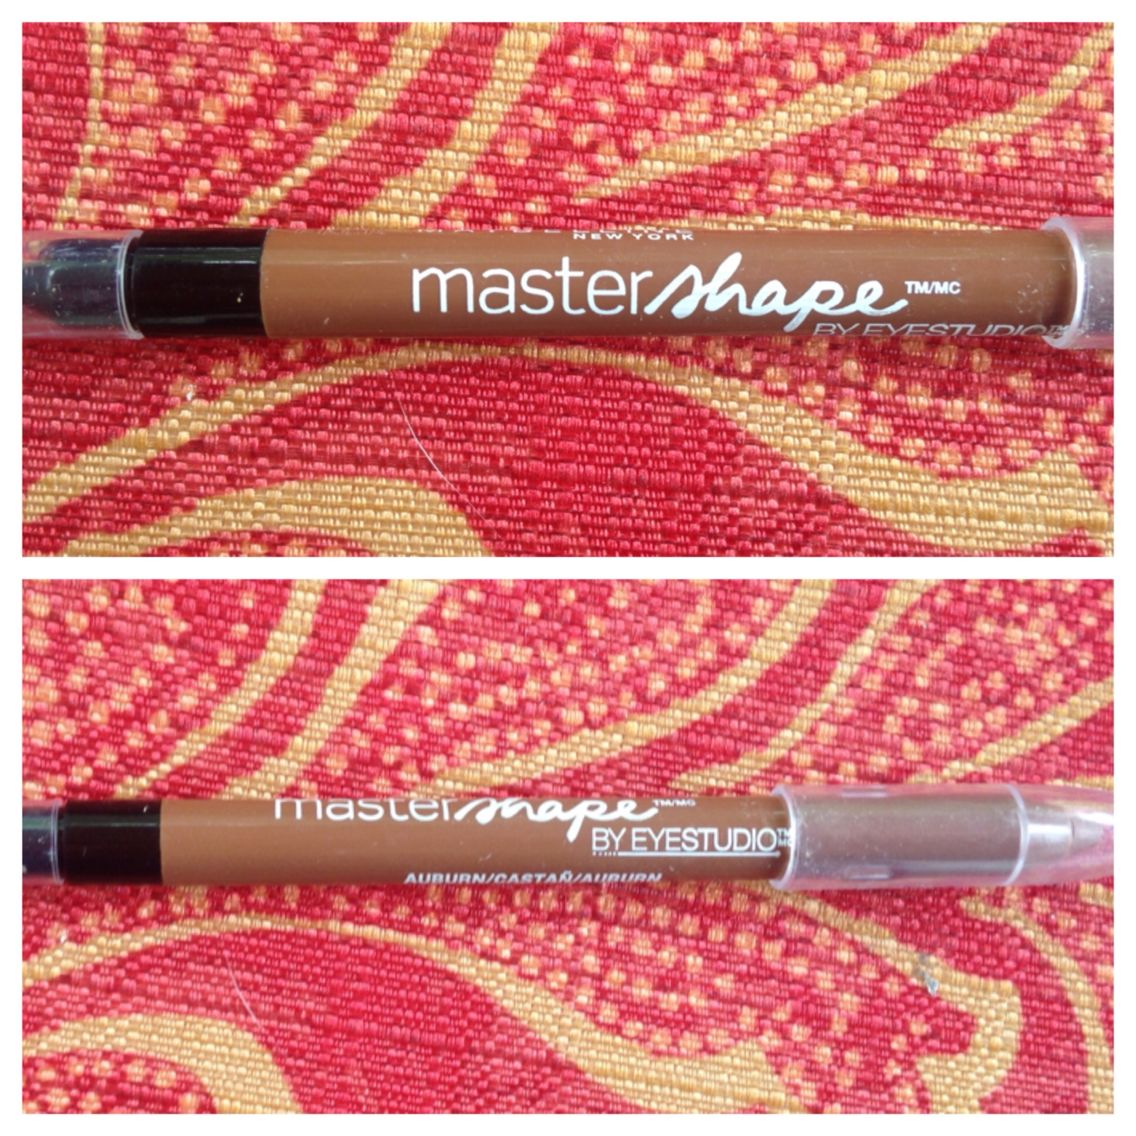 Maybelline eyebrow in auburn, swatched once, has pencil on